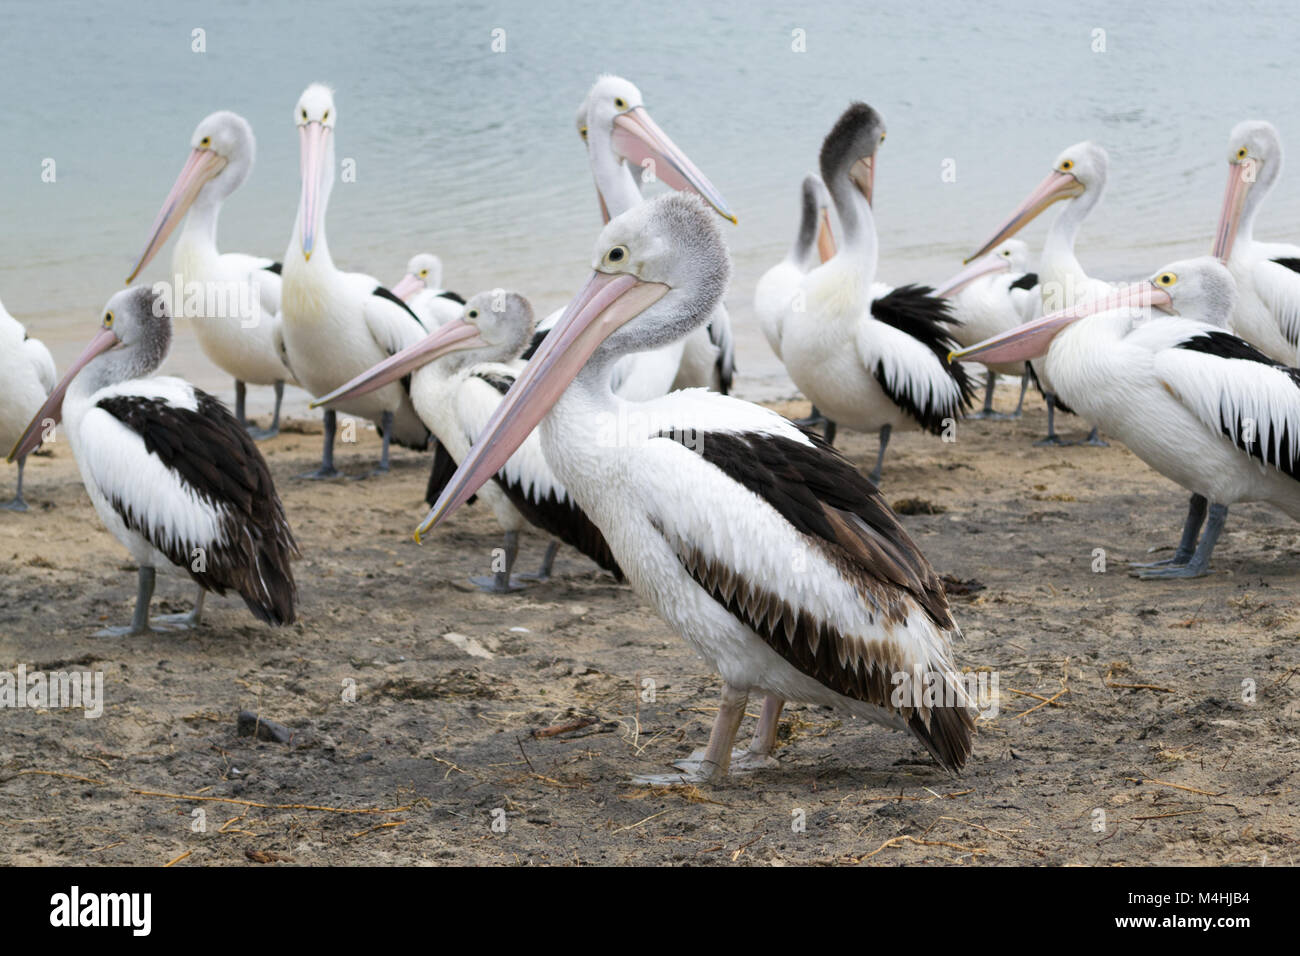 Pelican feeding in San Remo - Stock Image